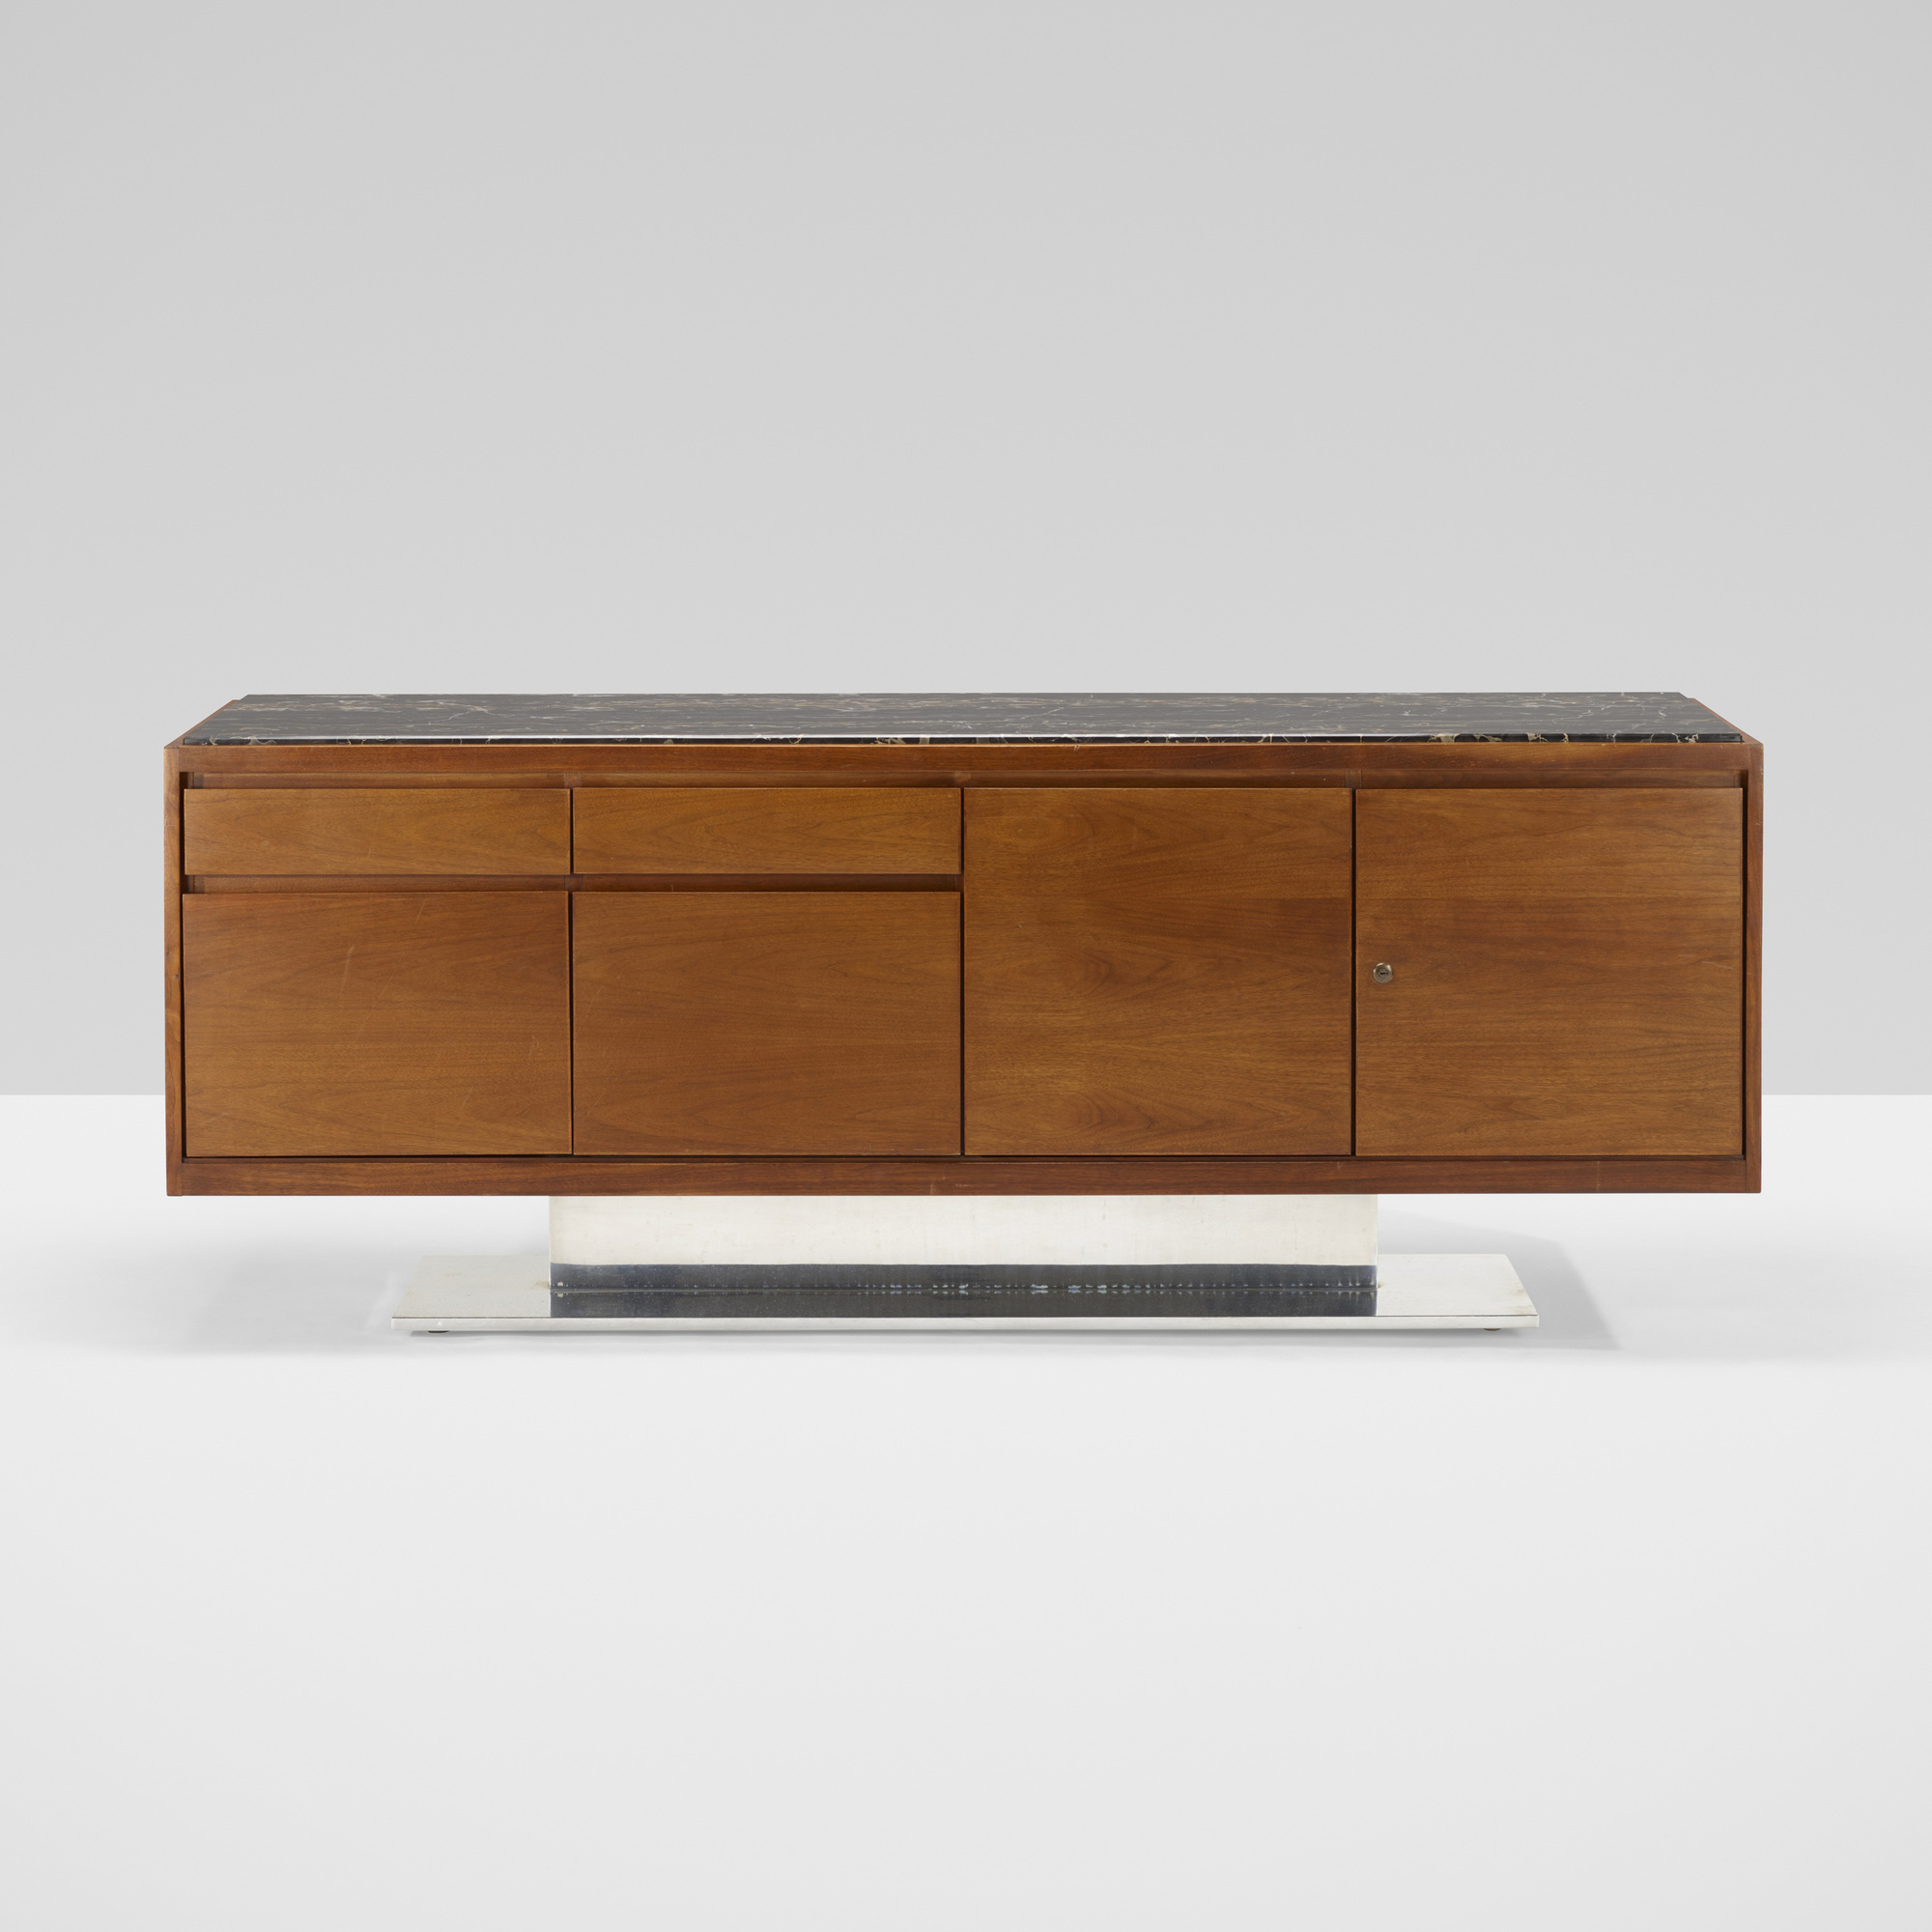 314: Warren Platner / cabinet (2 of 2)